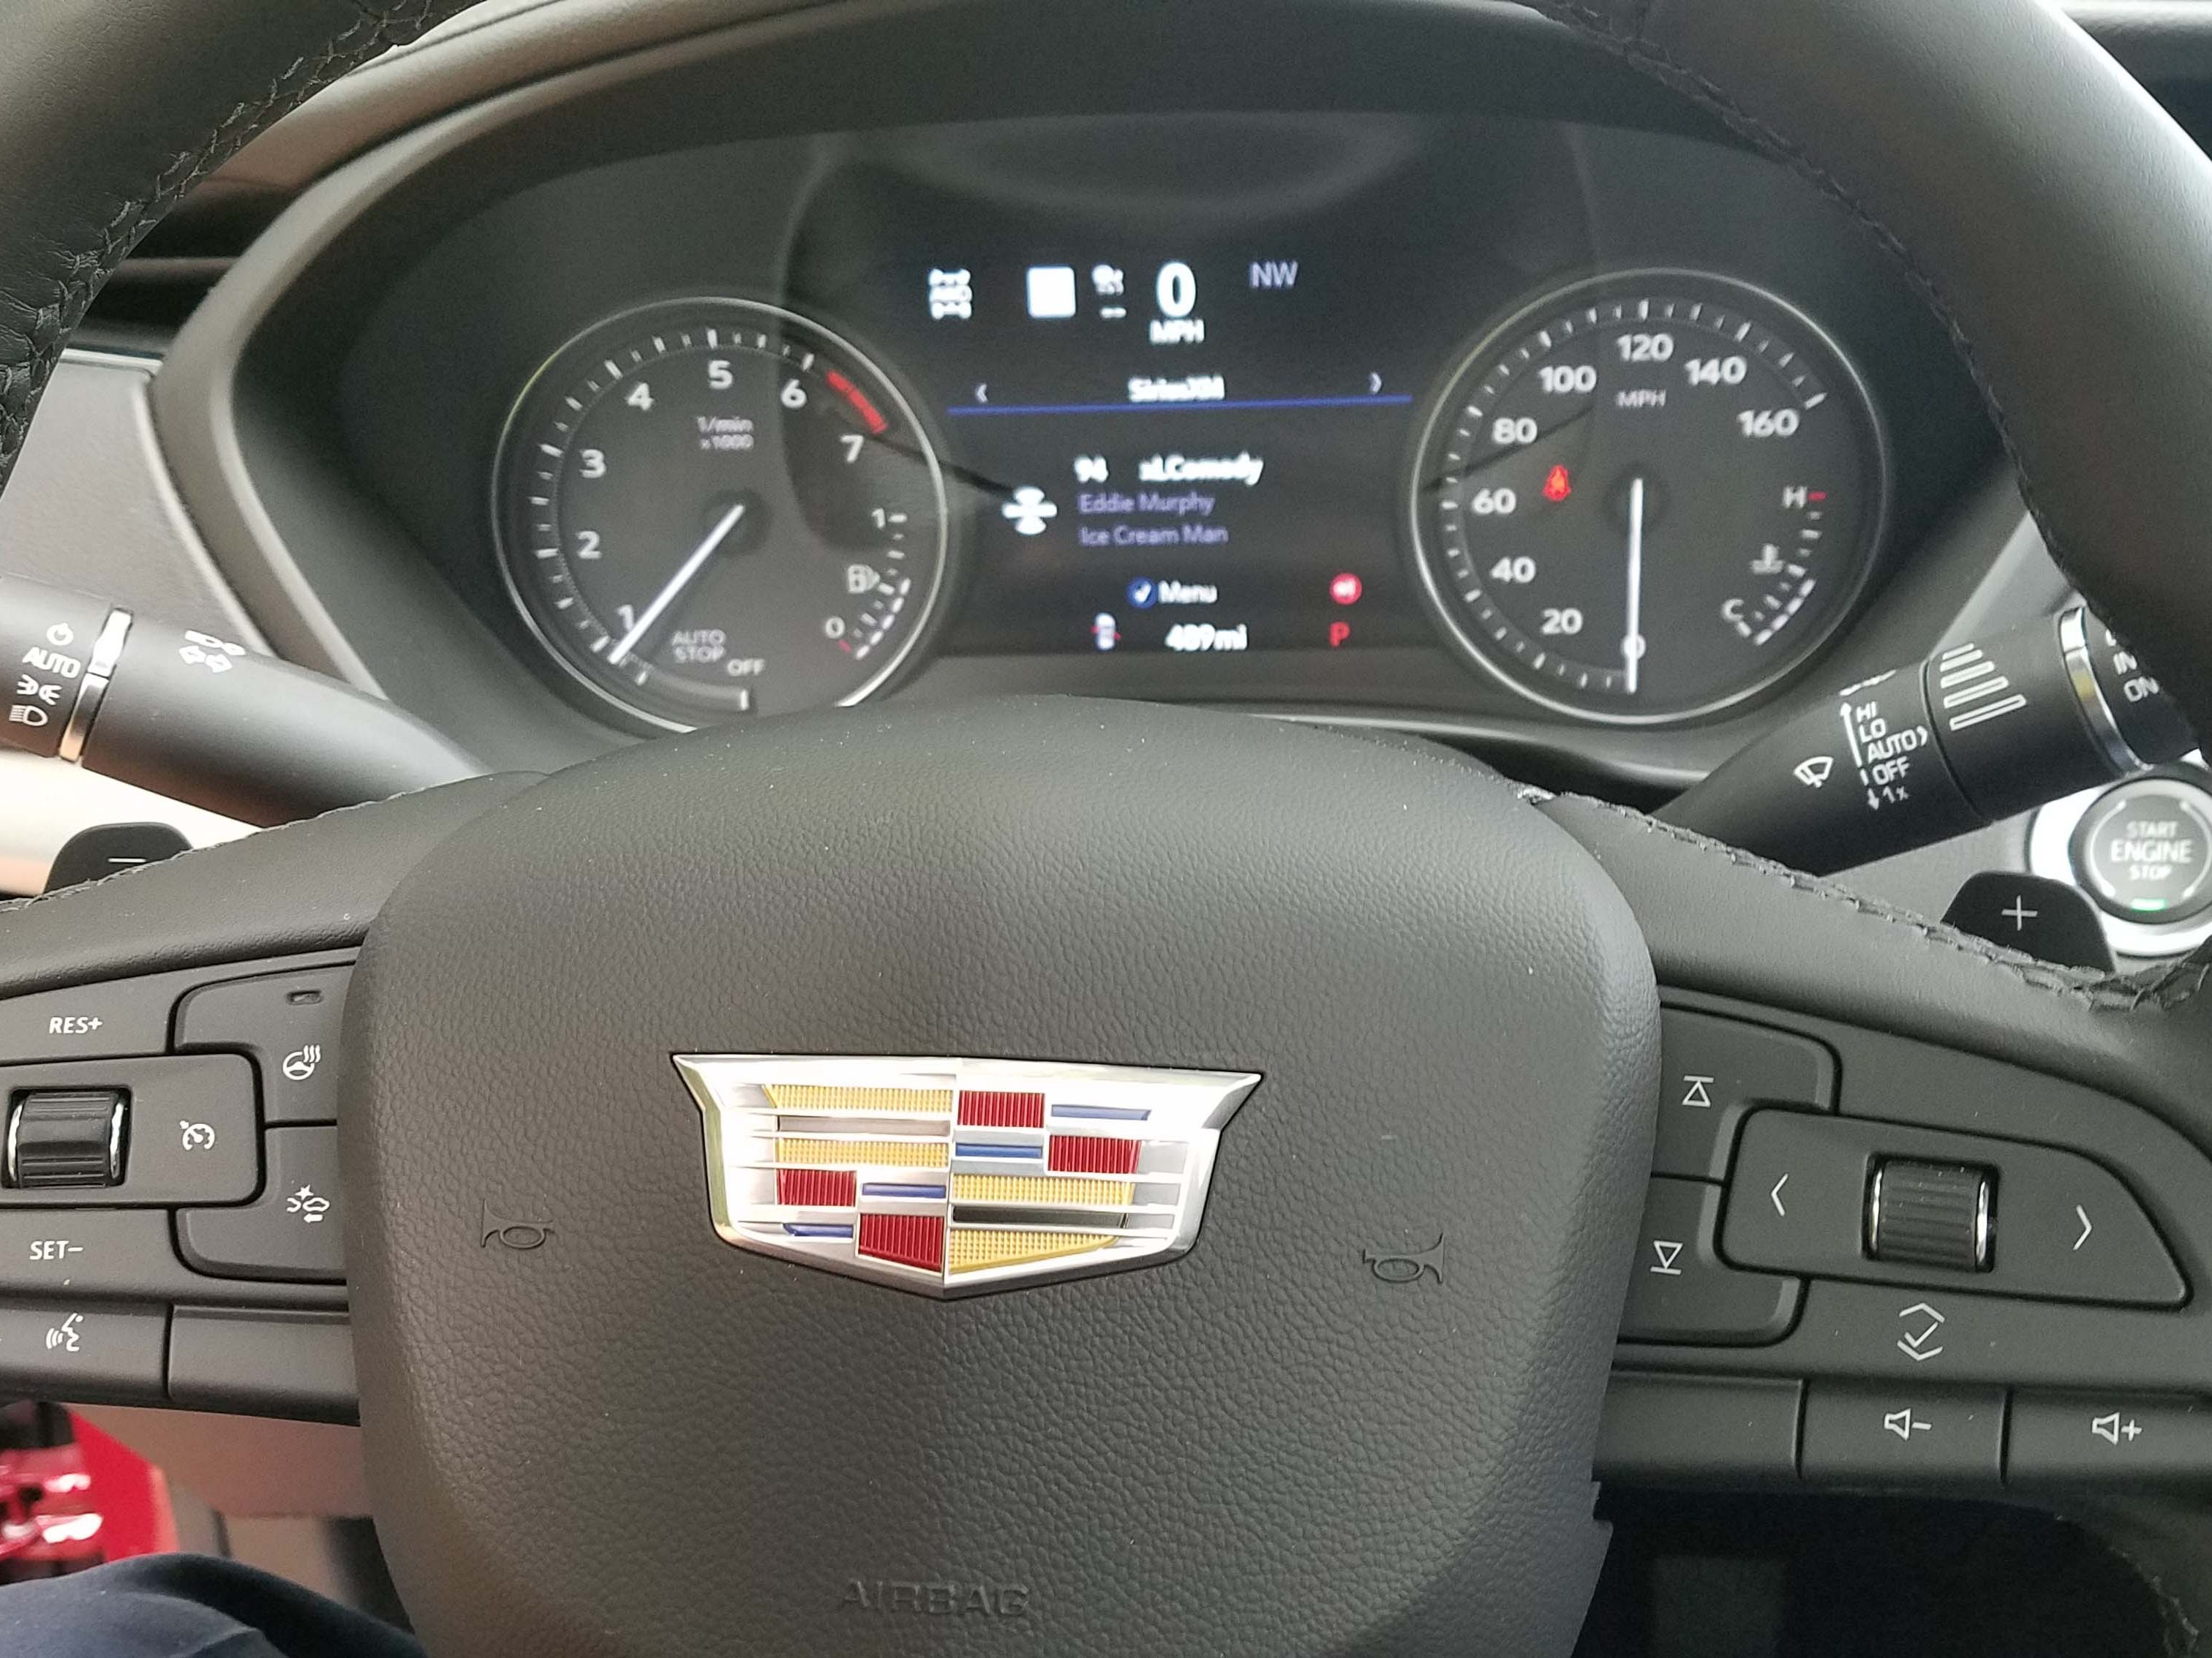 Useful steering wheel buttons, instrument panel information and a head-up display mean that 2019 Cadillac XT4 drivers can keep their eyes trained to the road.